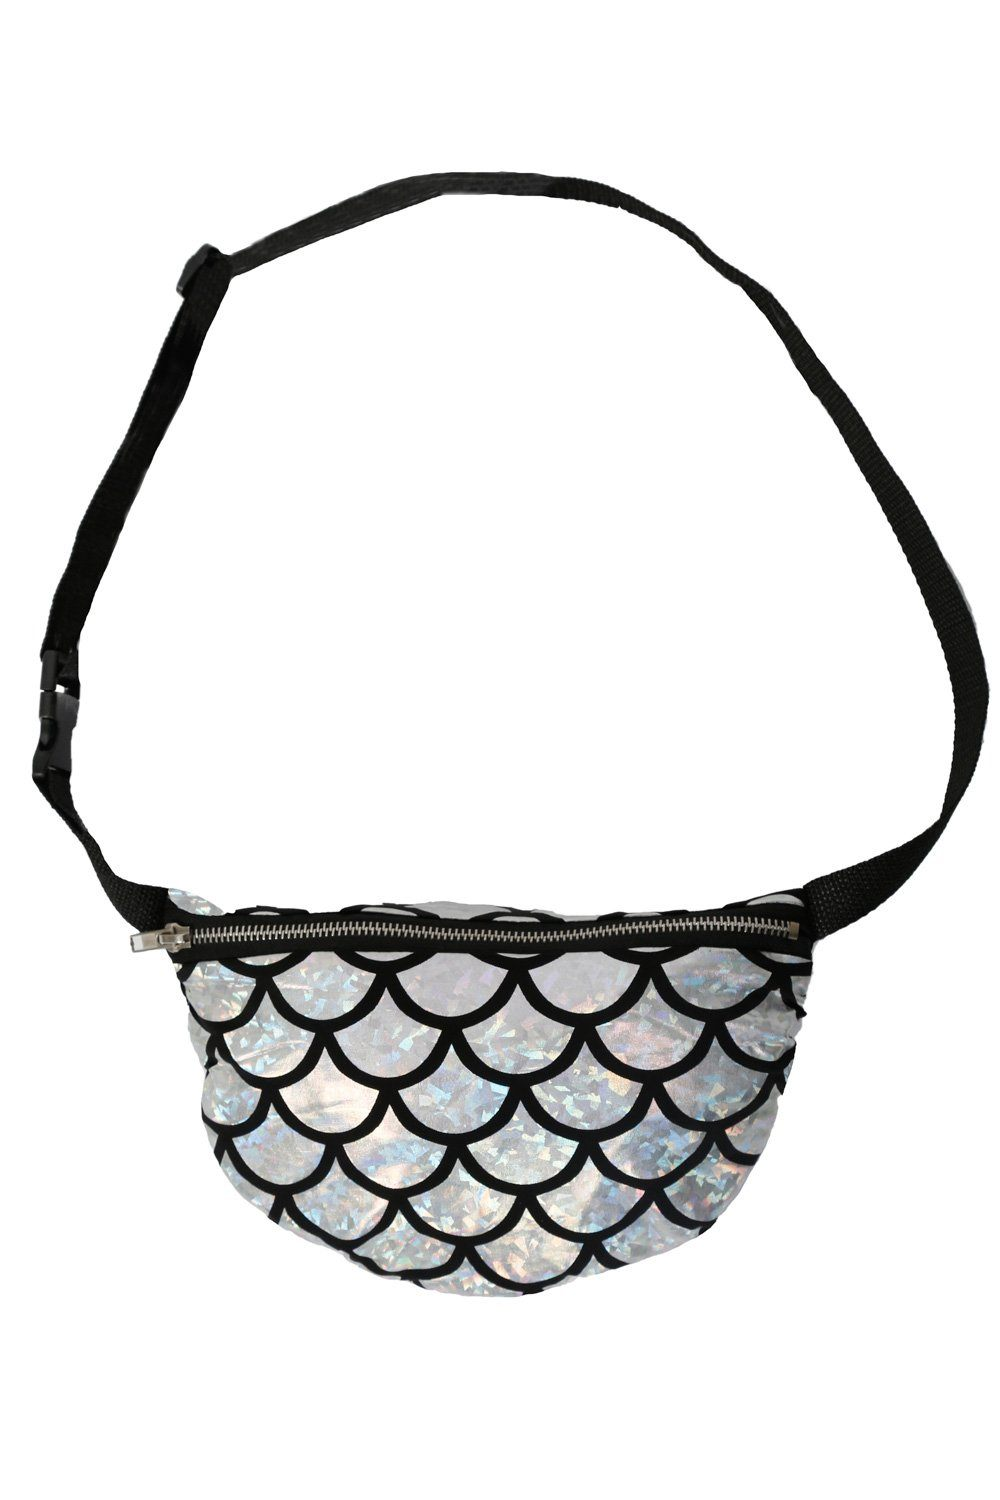 Mermaid Scale Print Bum Bag in Silver 4